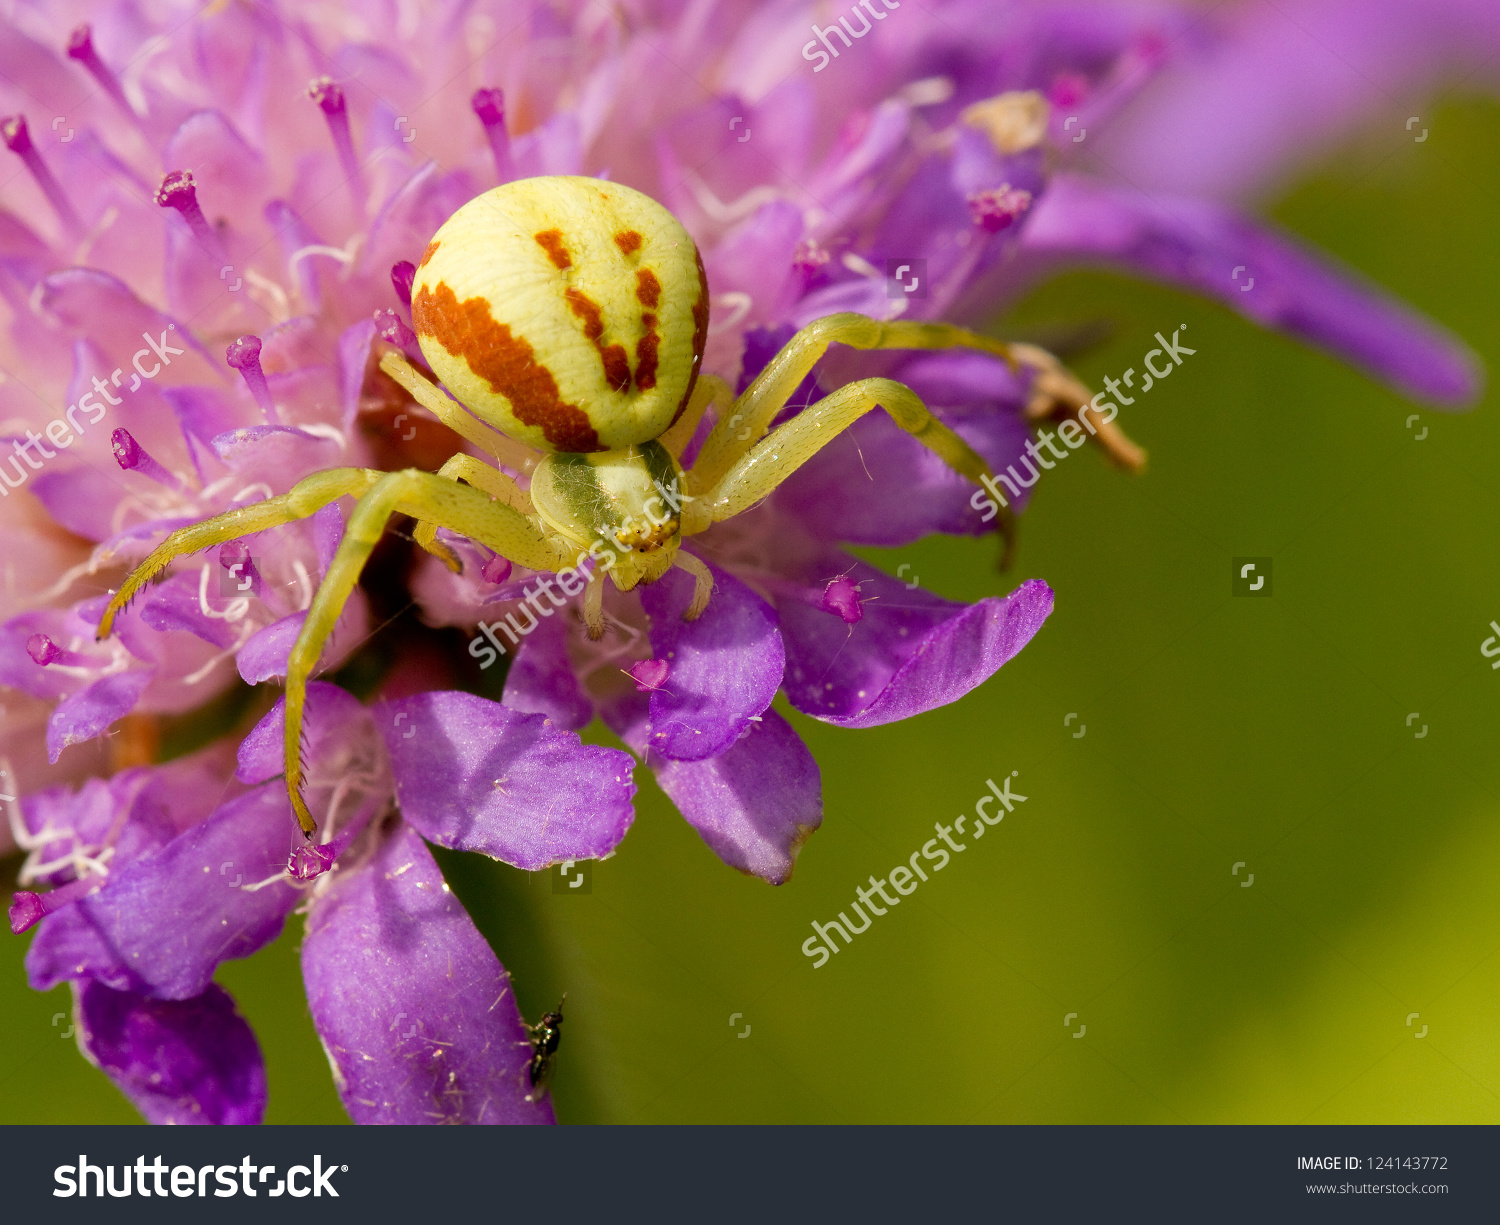 Goldenrod Crab Spider Sitting On A Flower.